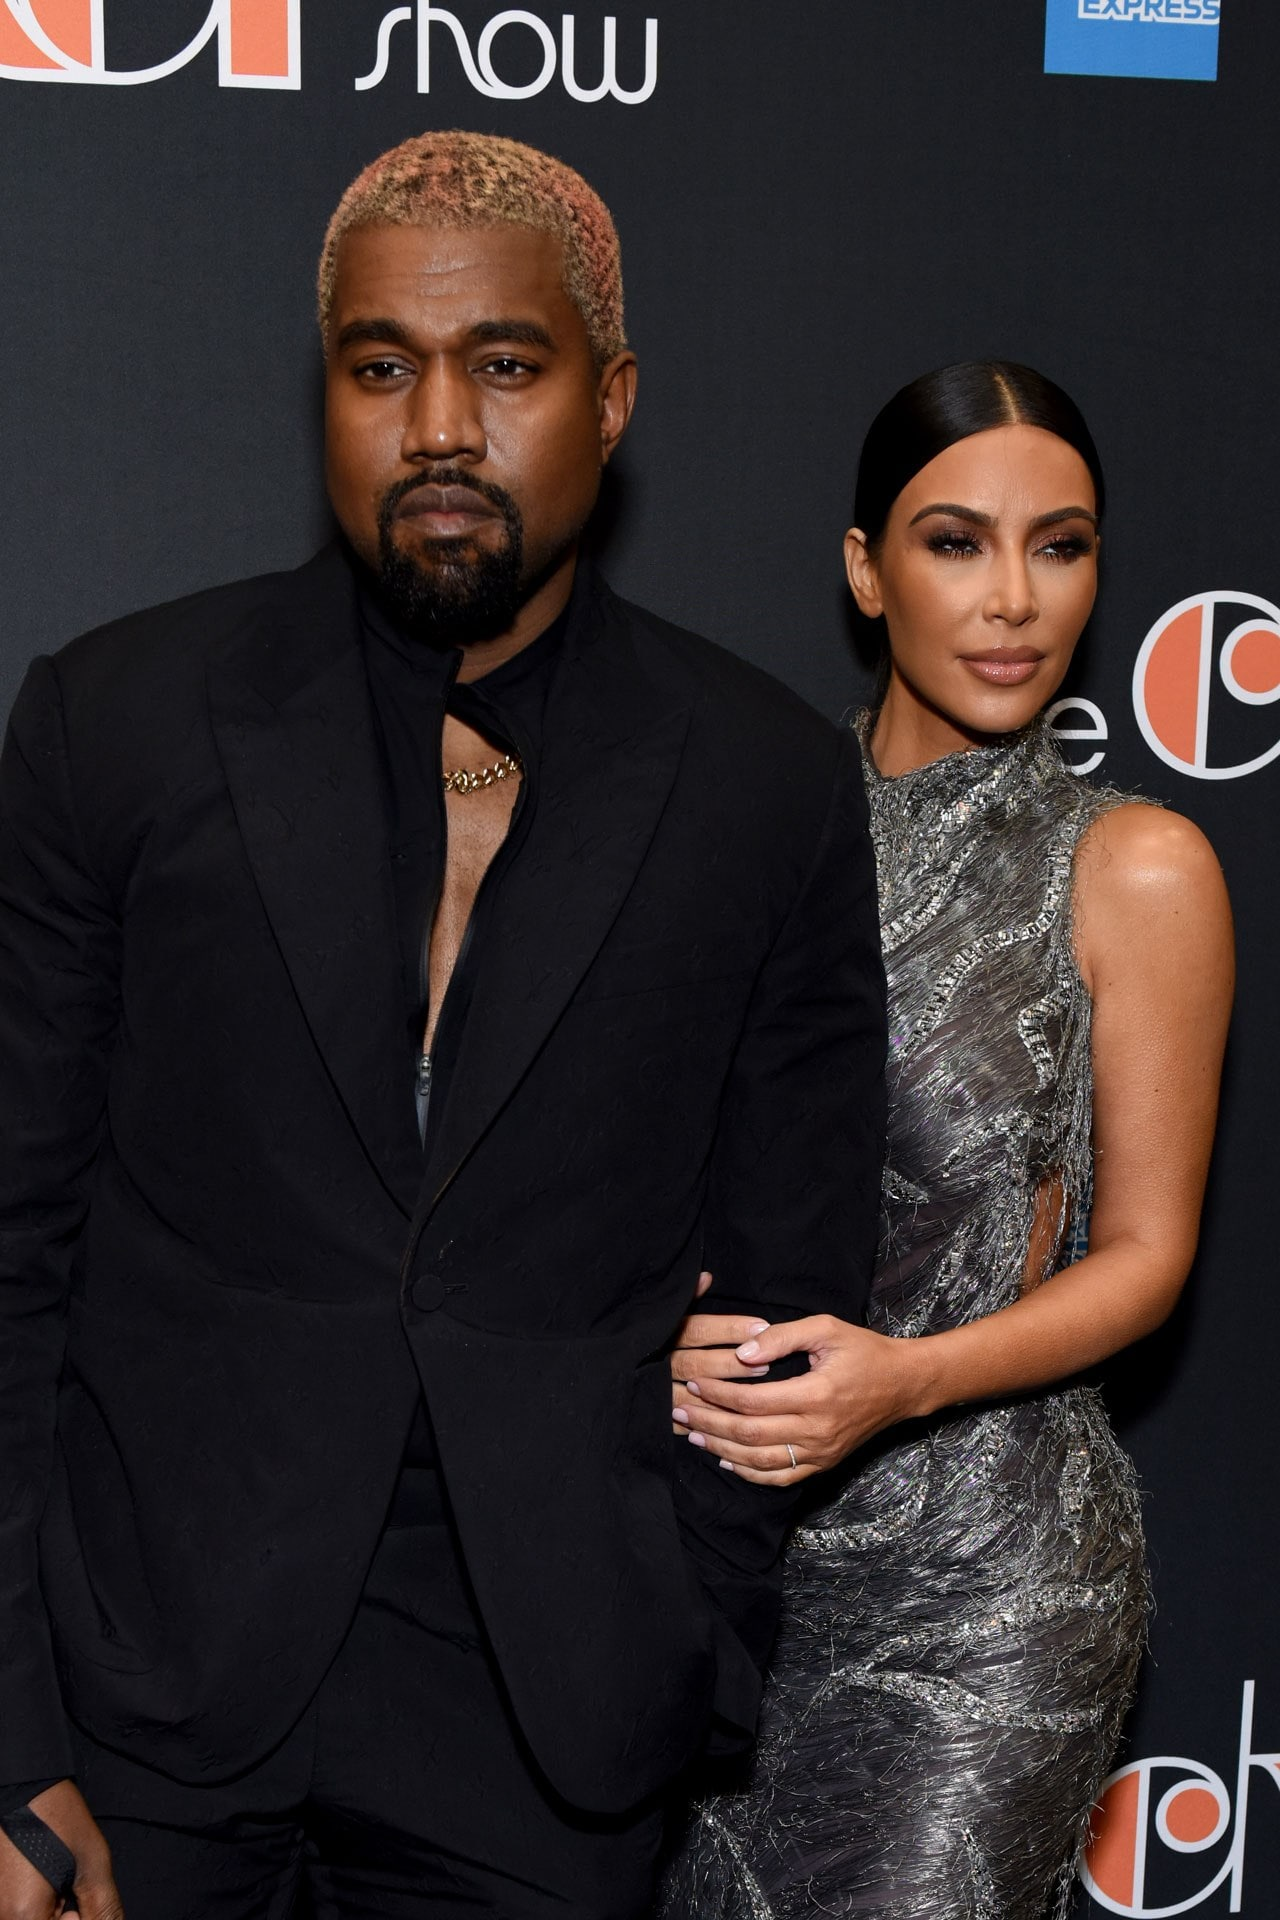 Kanye West offers to pay Kim Kardashian West's make-up artist to move to LA